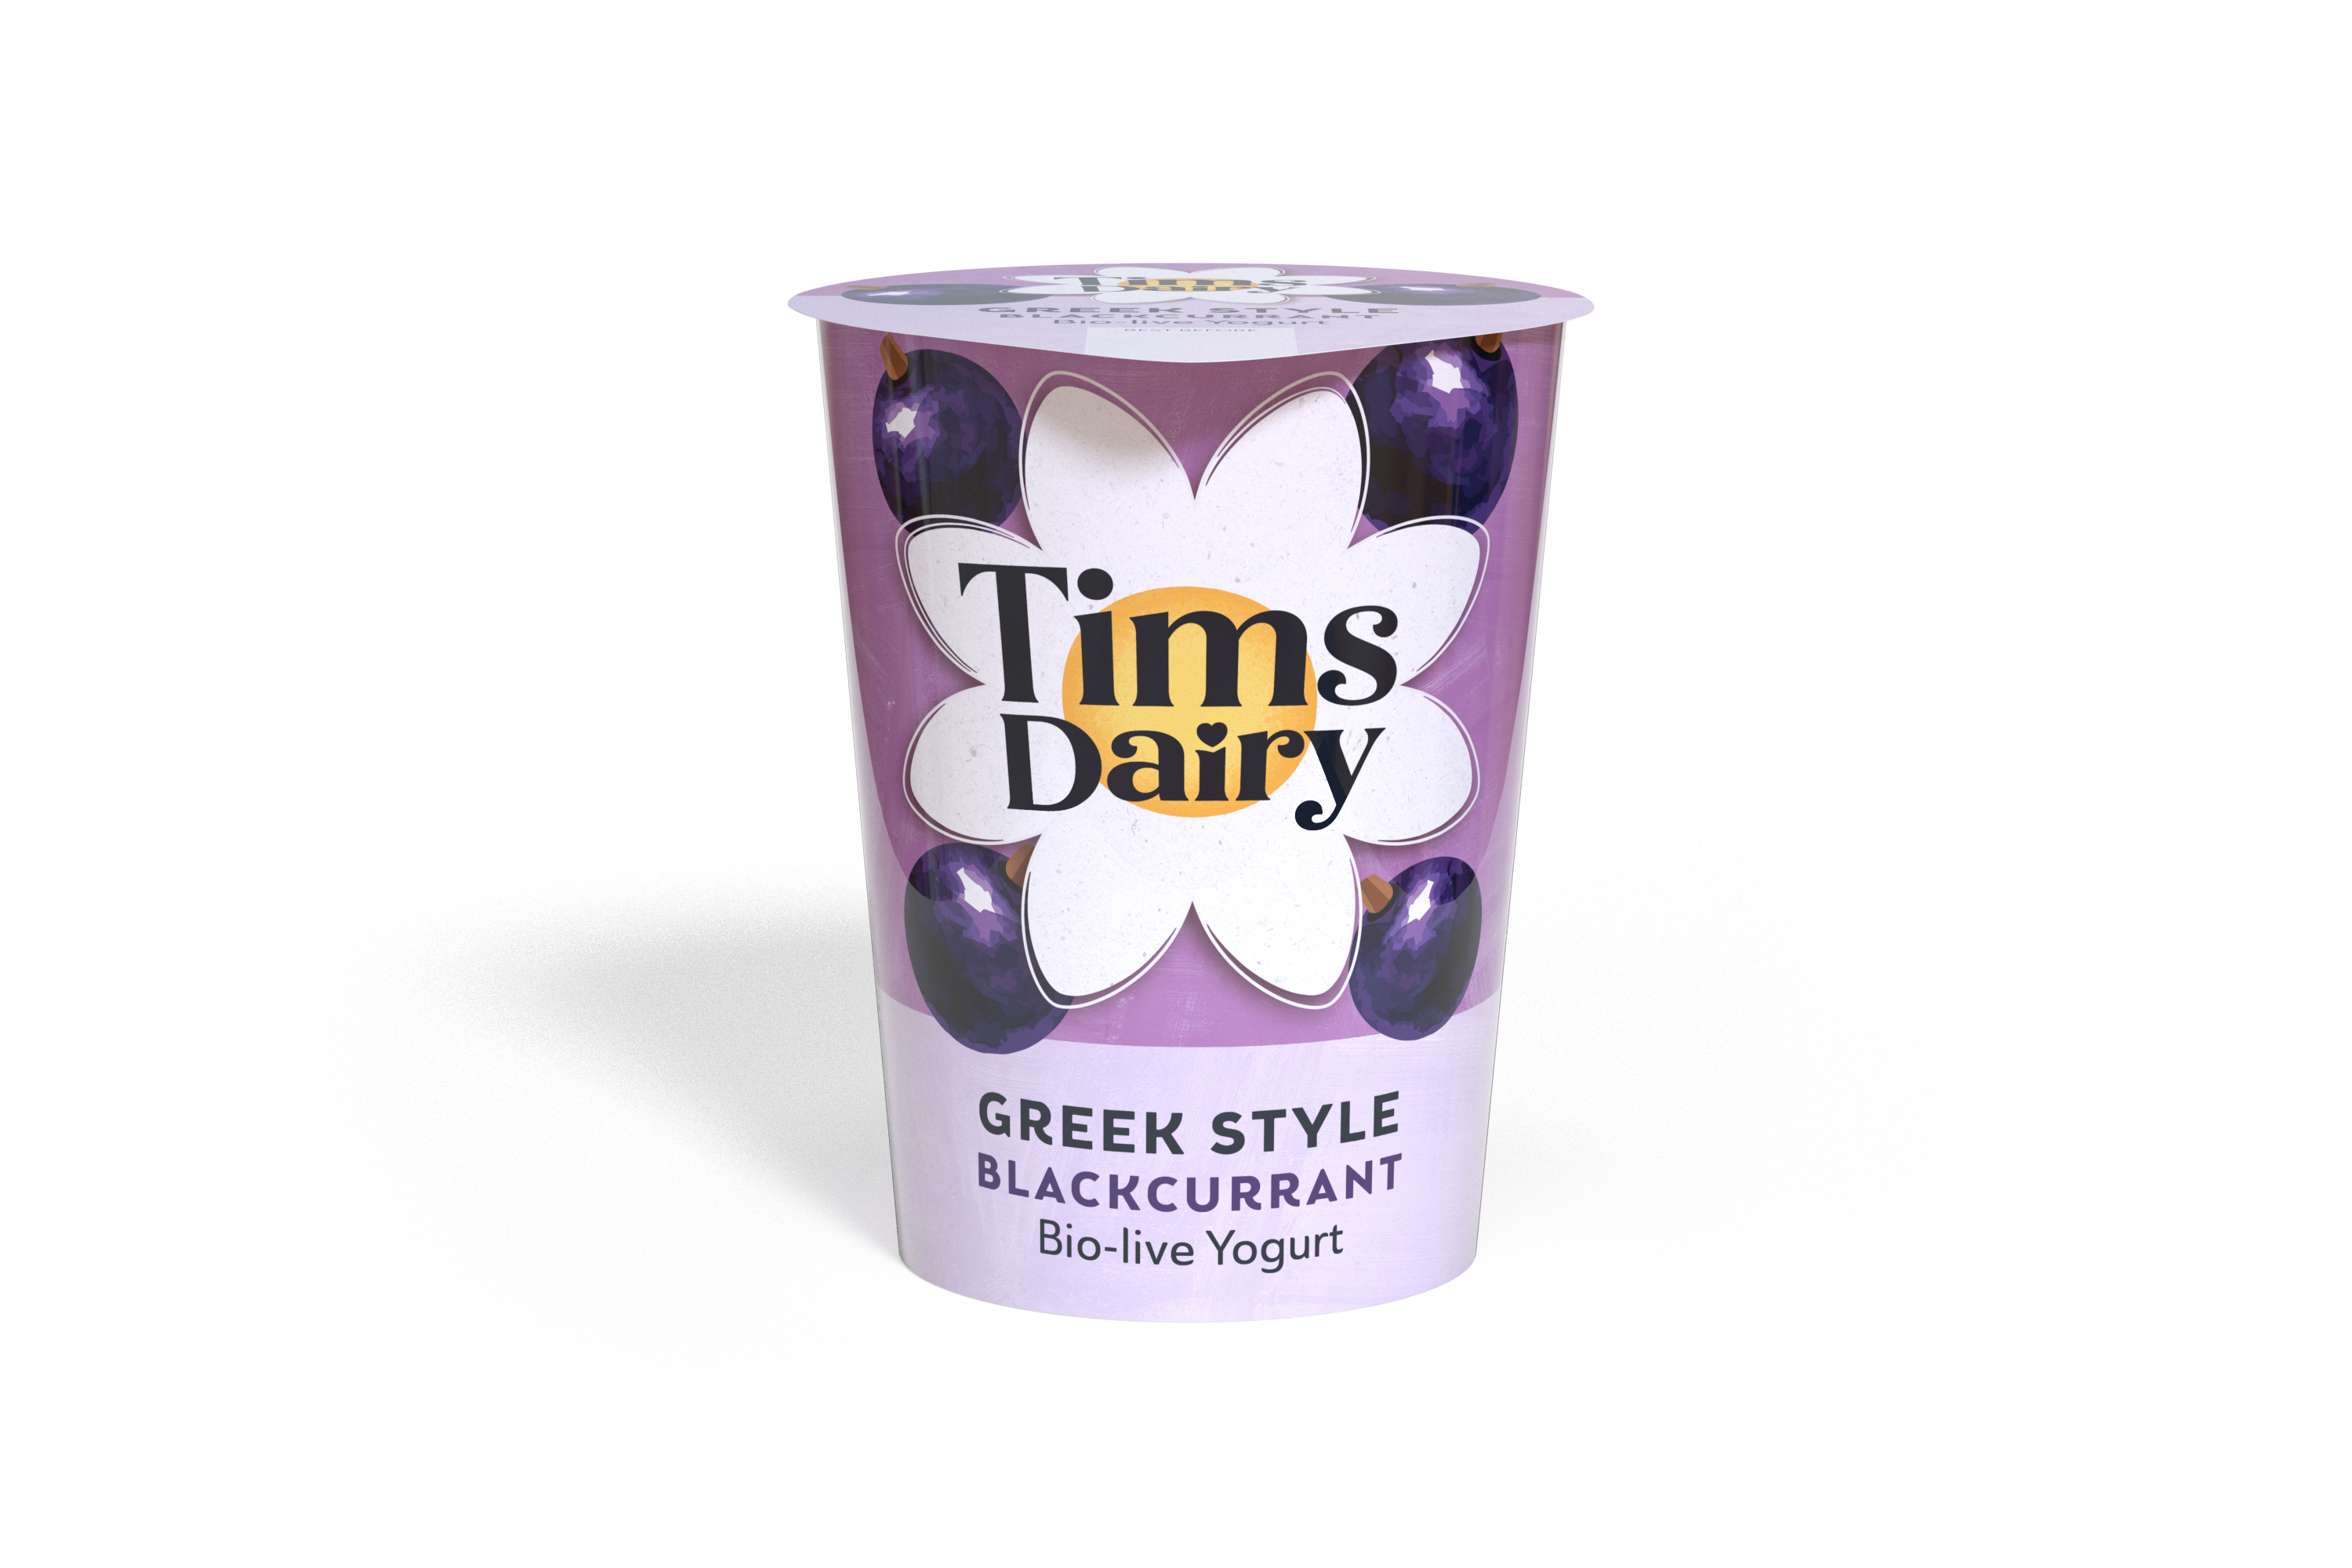 Blackcurrant Tims2-Angled View